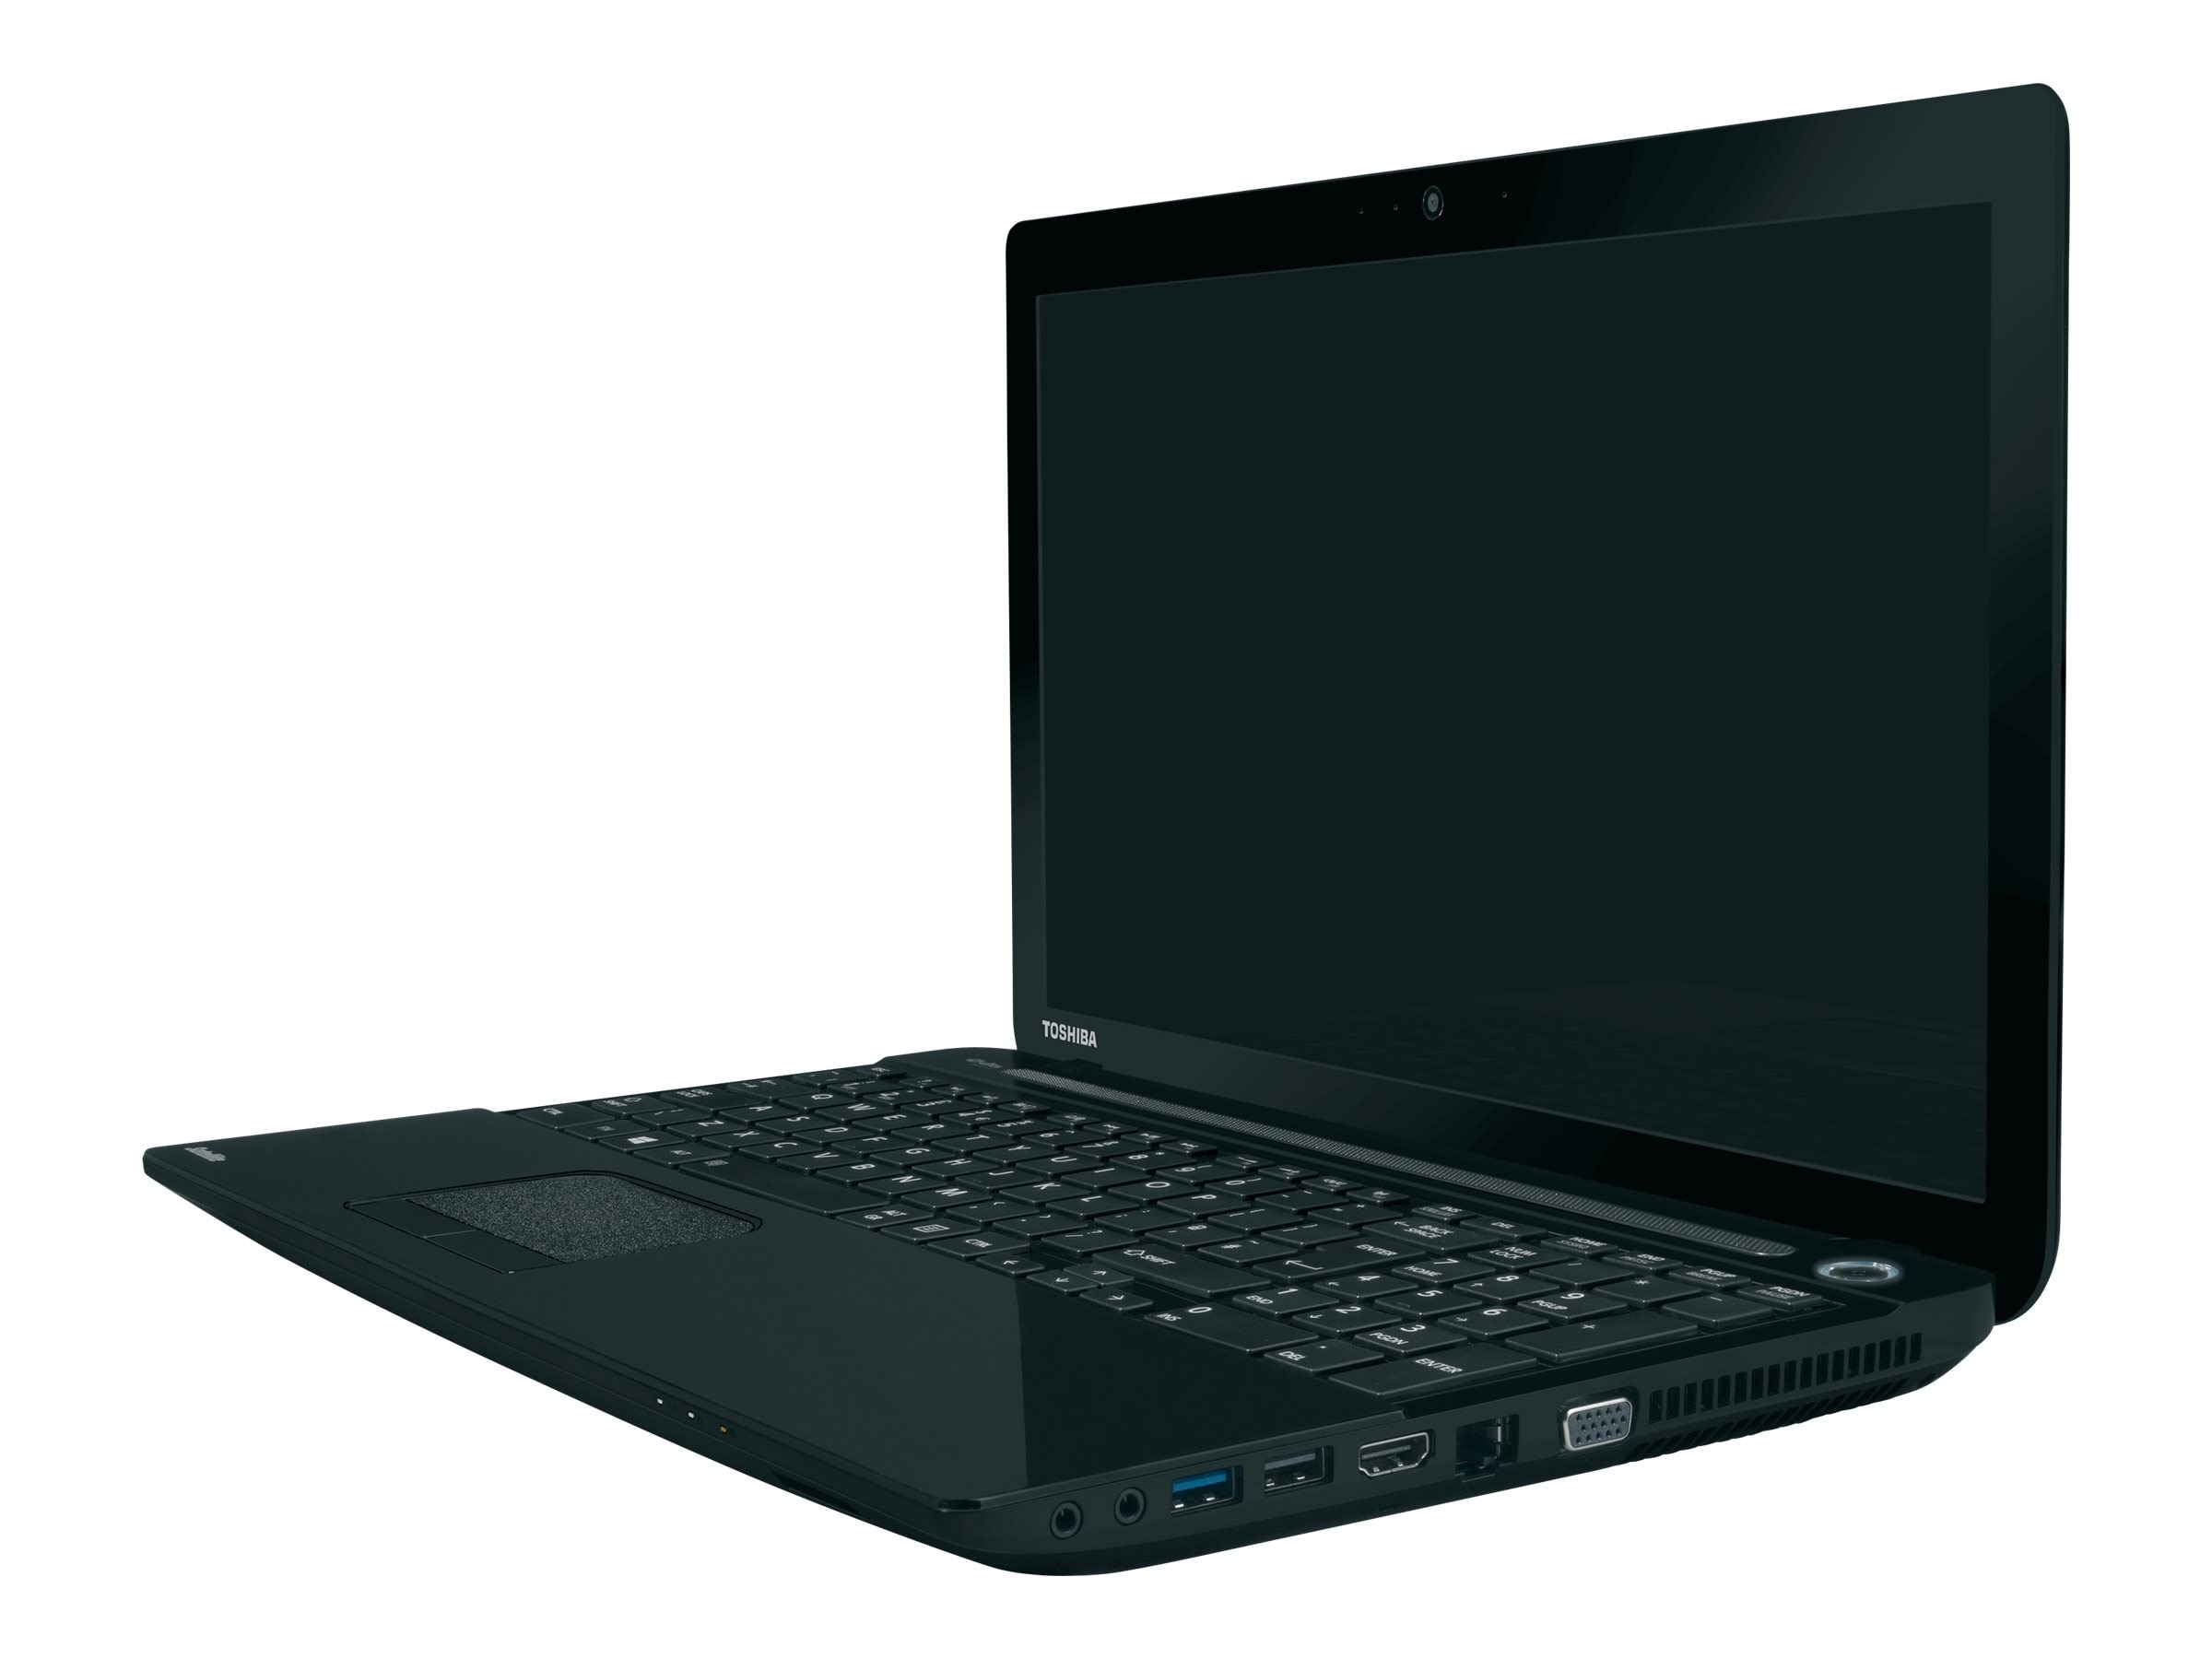 Toshiba Satellite C55-B5392 1.7GHz Core i3 15.6in display, PSCLUU-02G075, 17826440, Notebooks